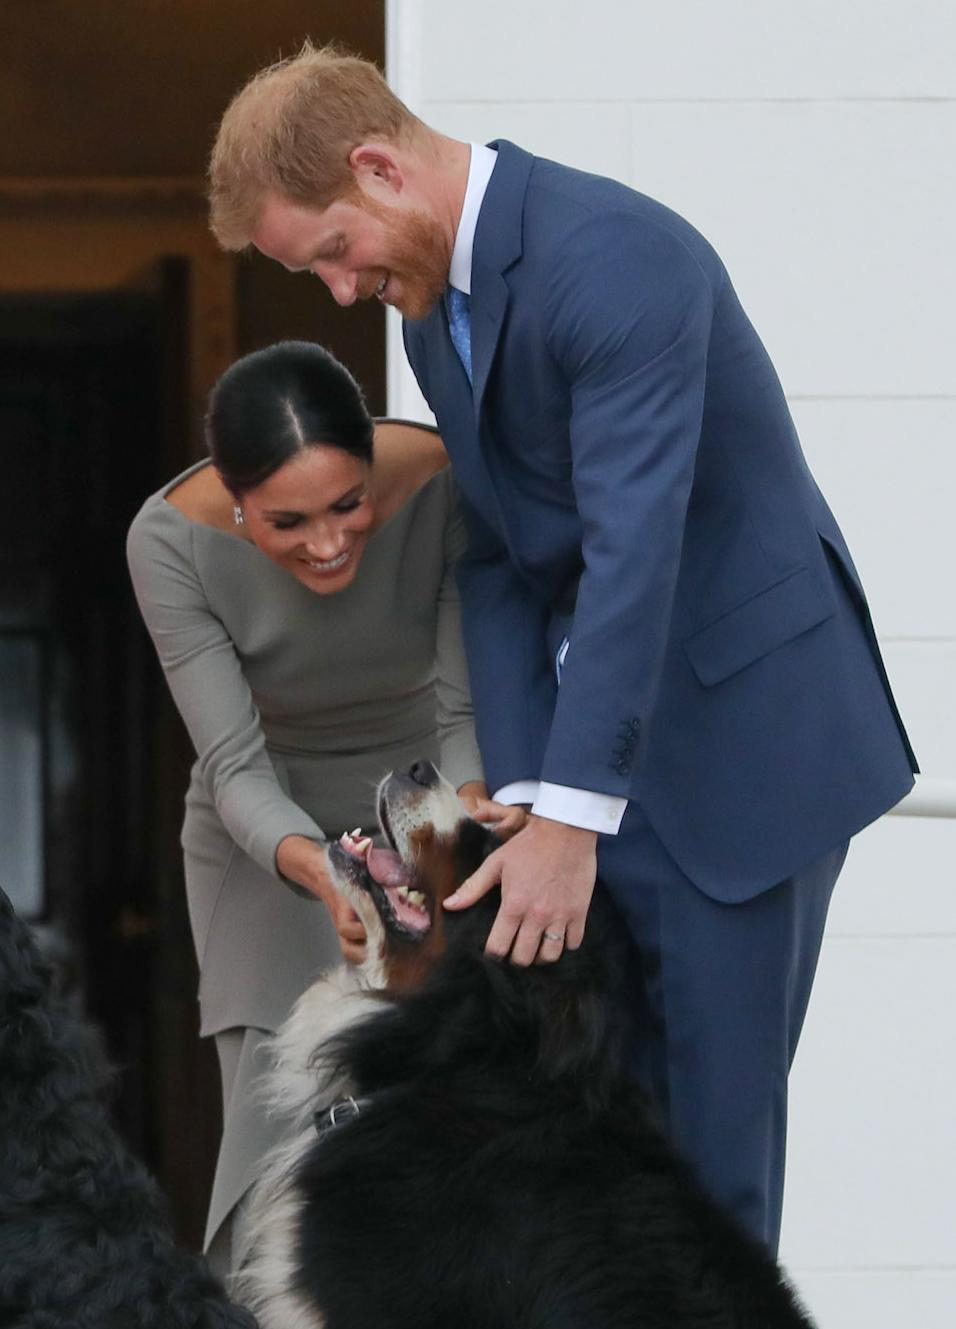 Britain's Prince Harry (R) and wife Meghan (2R), Duke and Duchess of Sussex greet the dogs of Ireland's President Michael Higgins and wife Sabina on arrival at the Presidential mansion on the second day of their visit in Dublin on July 11, 2018. (Photo by MAXWELLS / POOL / AFP)        (Photo credit should read MAXWELLS/AFP/Getty Images)